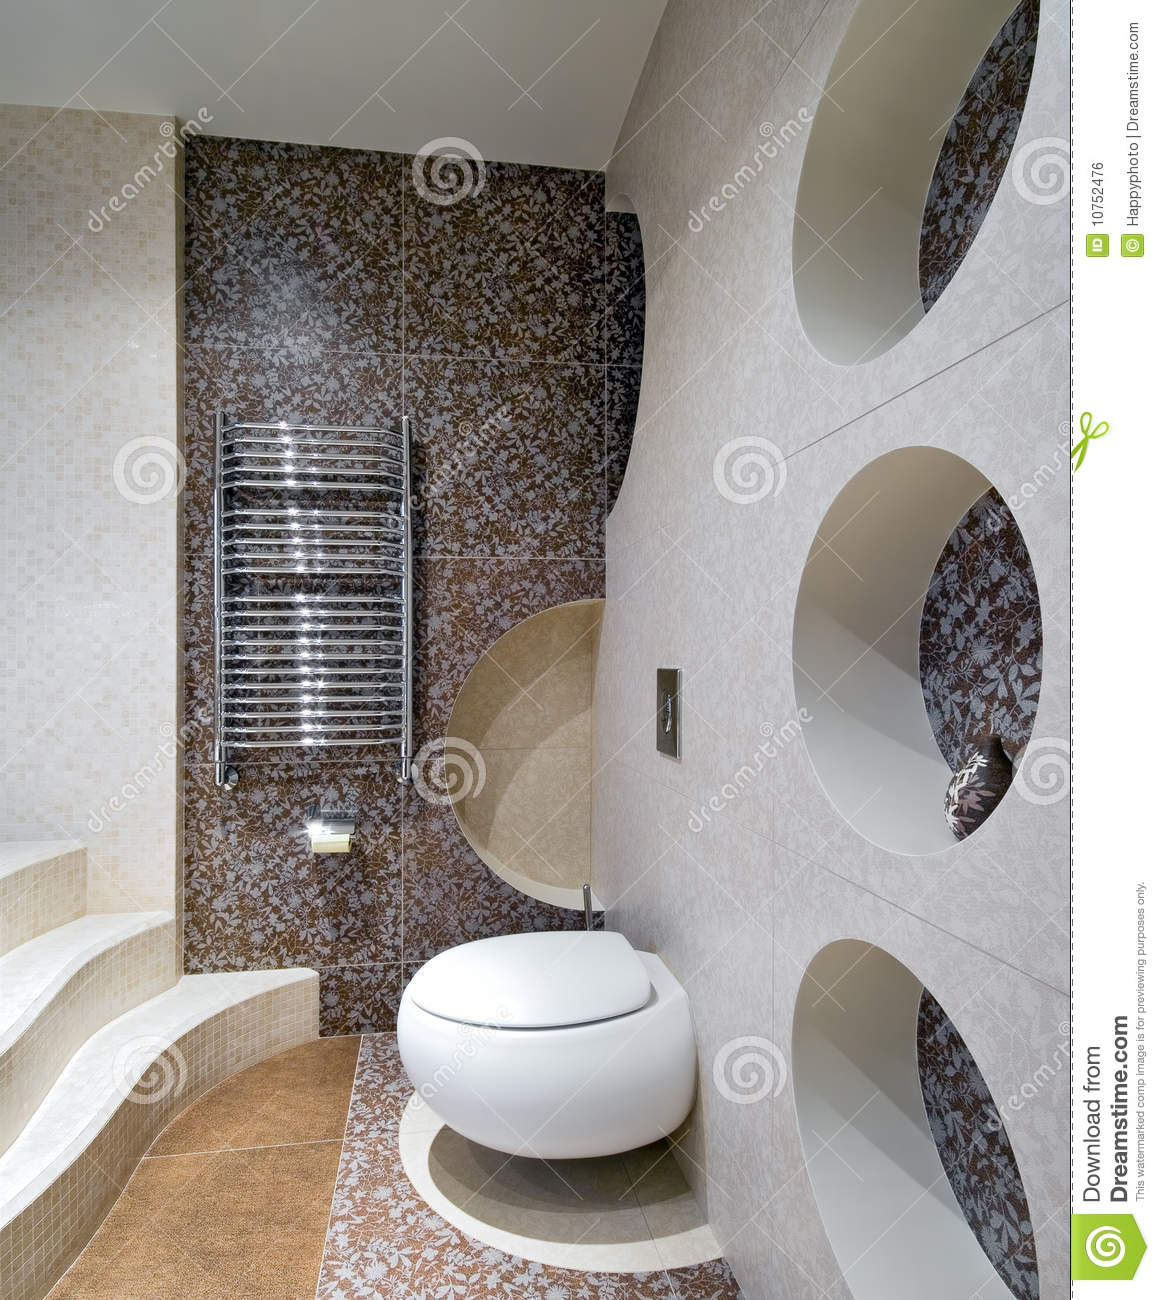 New design of toilet room royalty free stock image image for Toilet room decor